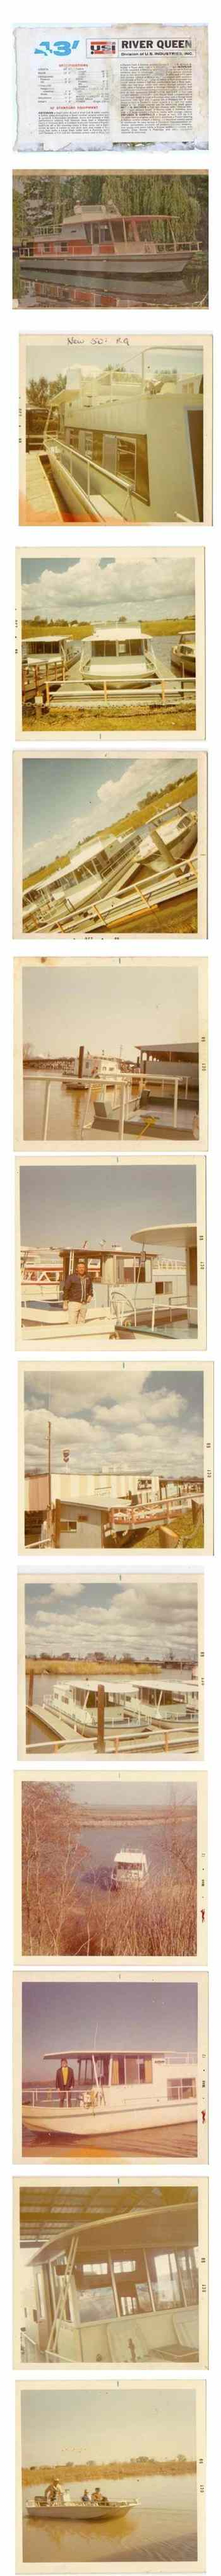 original history photos of River Queen houseboats